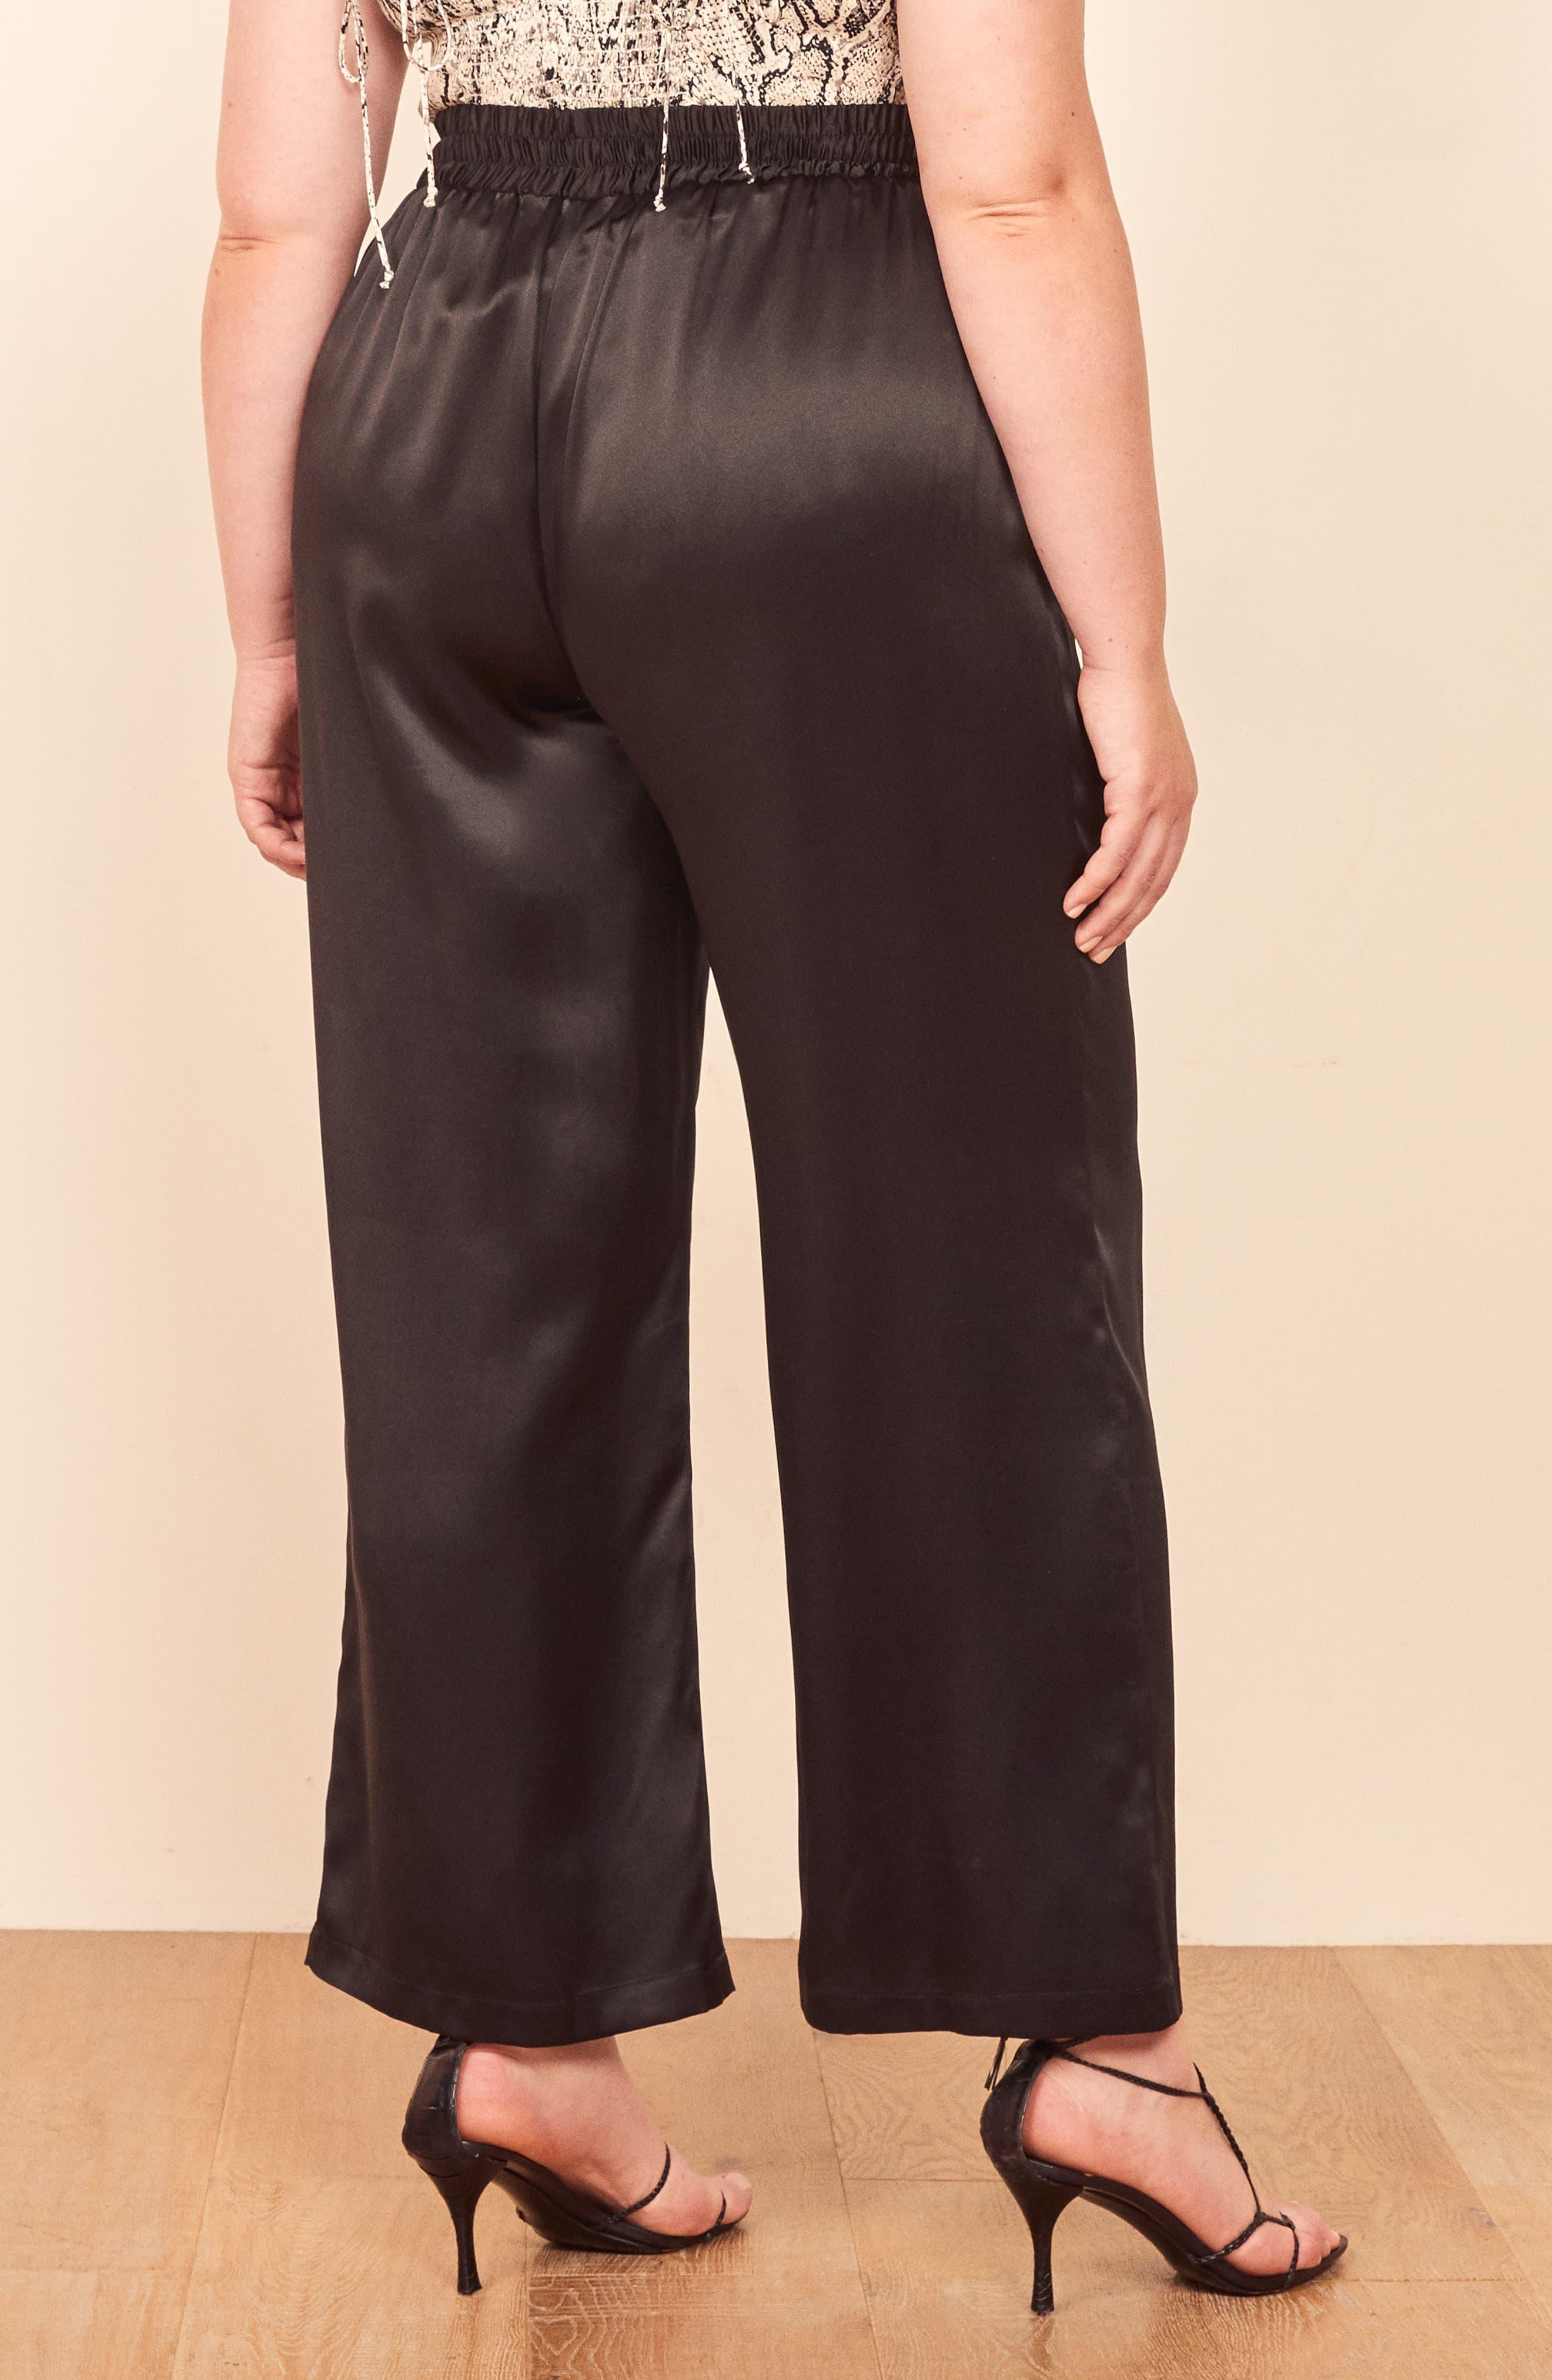 TIFENNY Fashion Harlan Trousers for Women Solid Buttons Cotton and Linen Casual Loose Trouser Wide Leg Pants Close The Foot